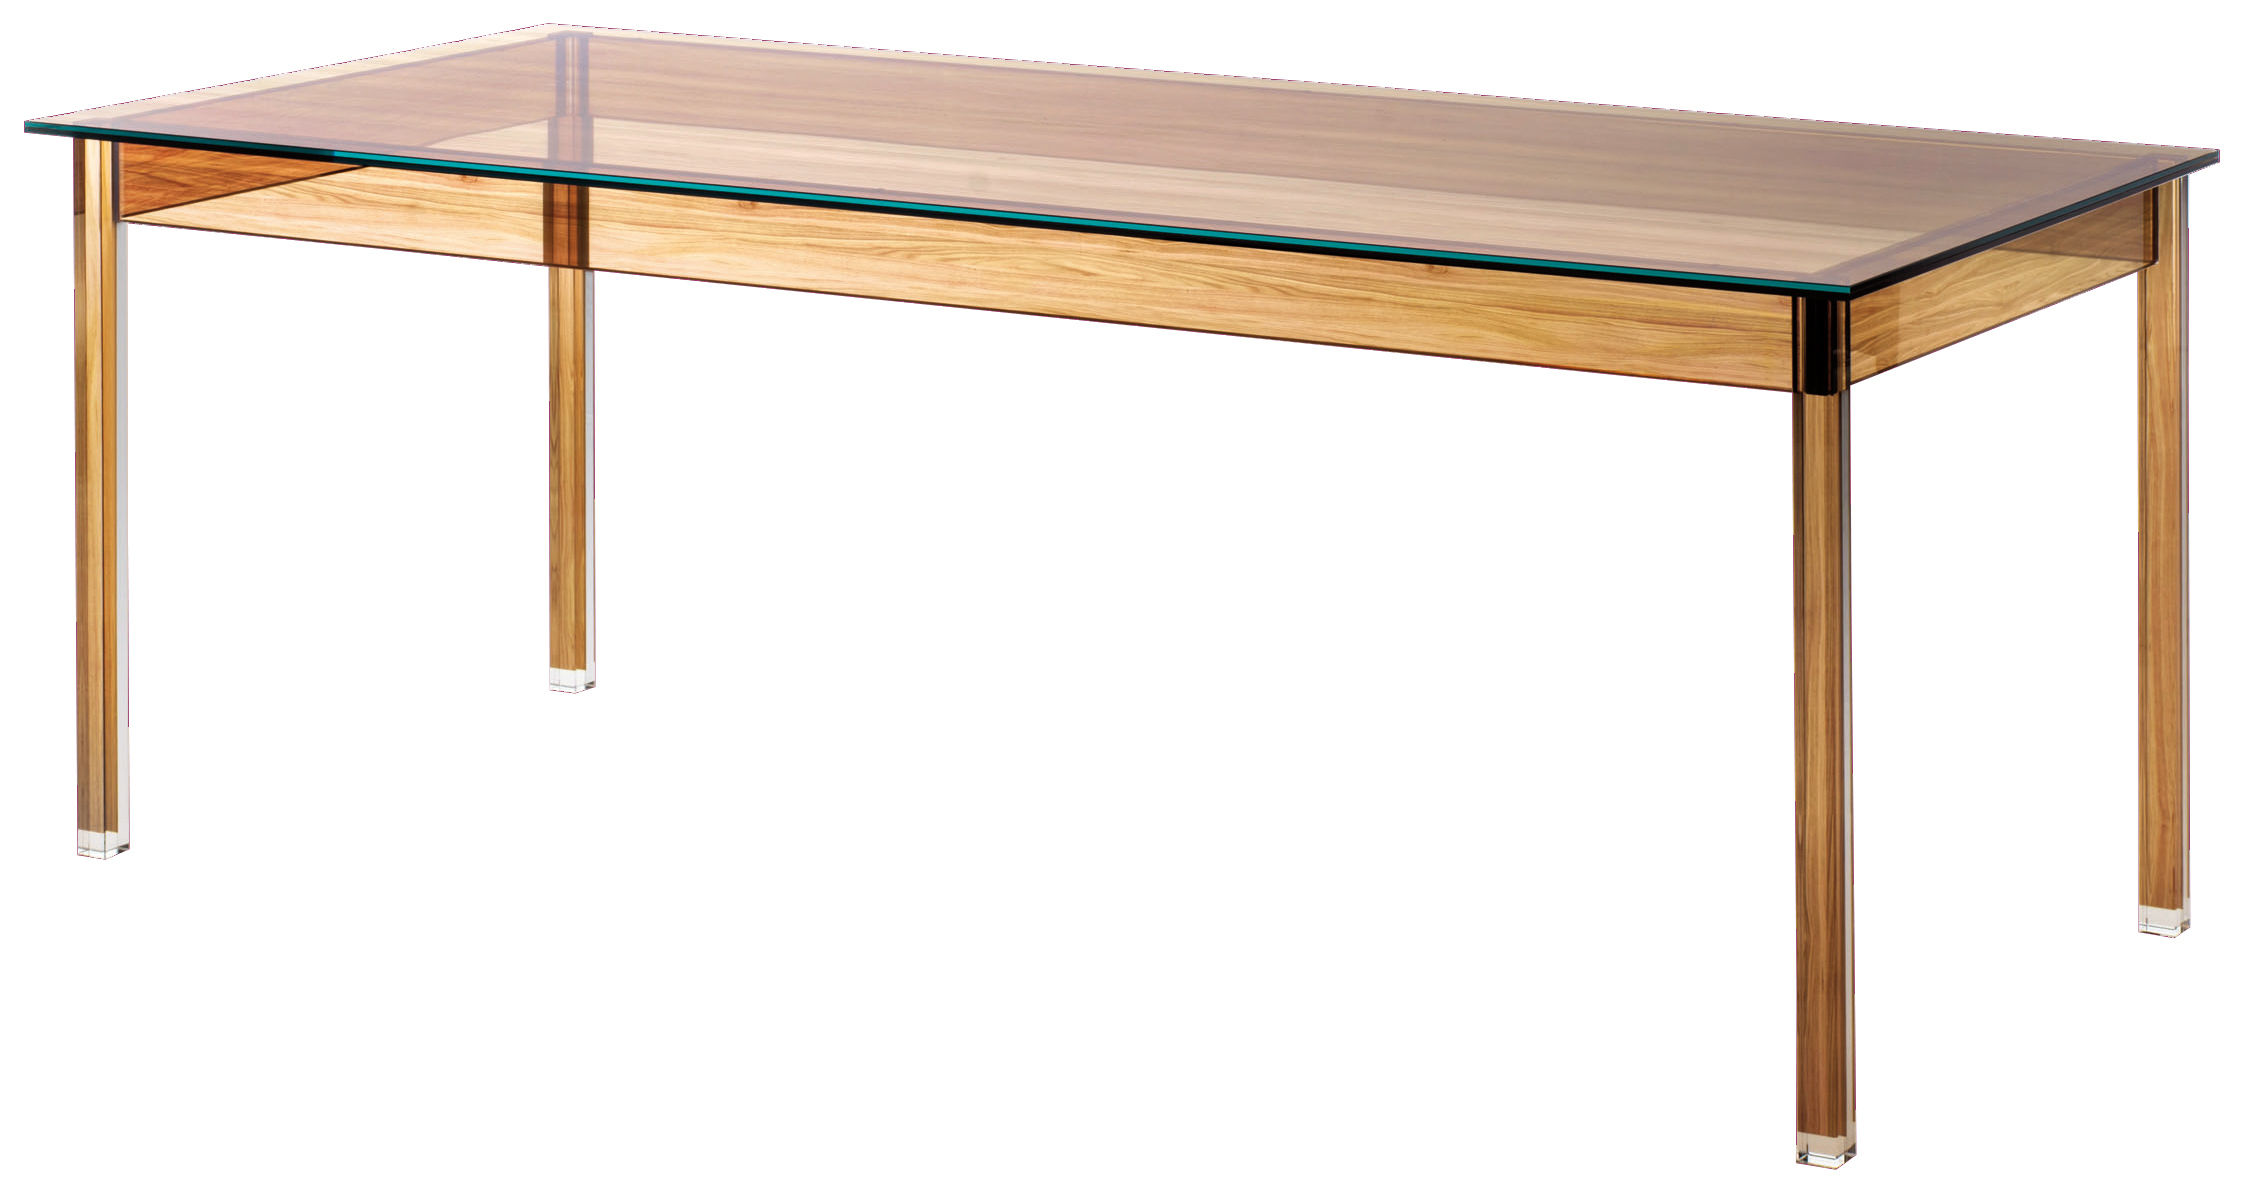 Furniture - Dining Tables - Sublimazione Rectangular table by Glas Italia - Transparent / Wood - Printed glass